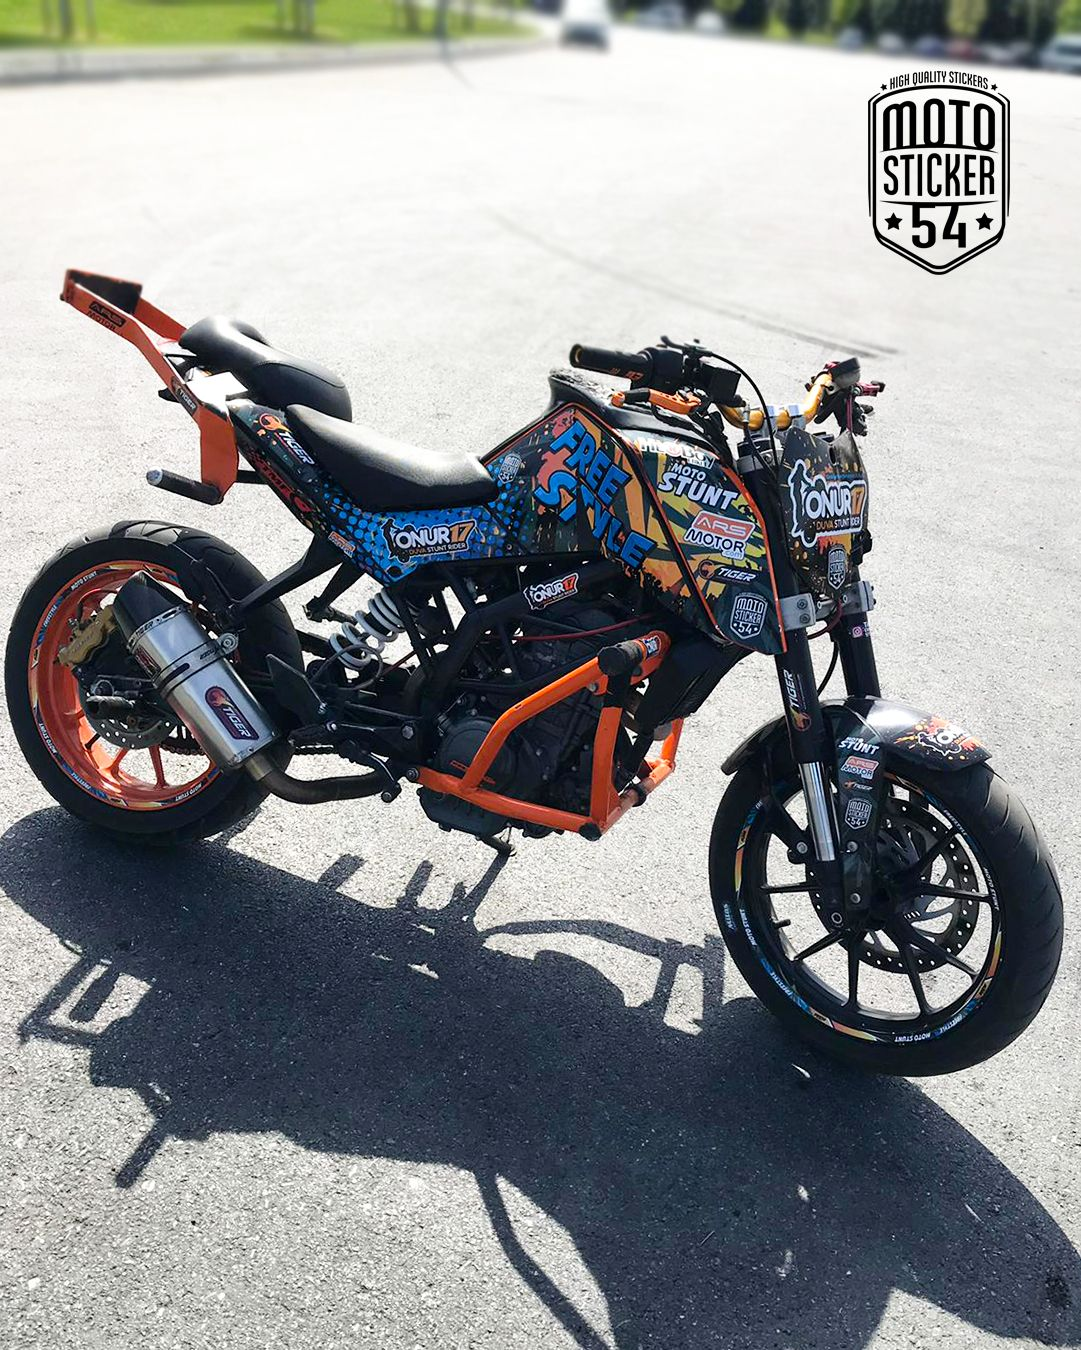 Ktm Duke 200 Onur Duva Custom Design Sticker Kit